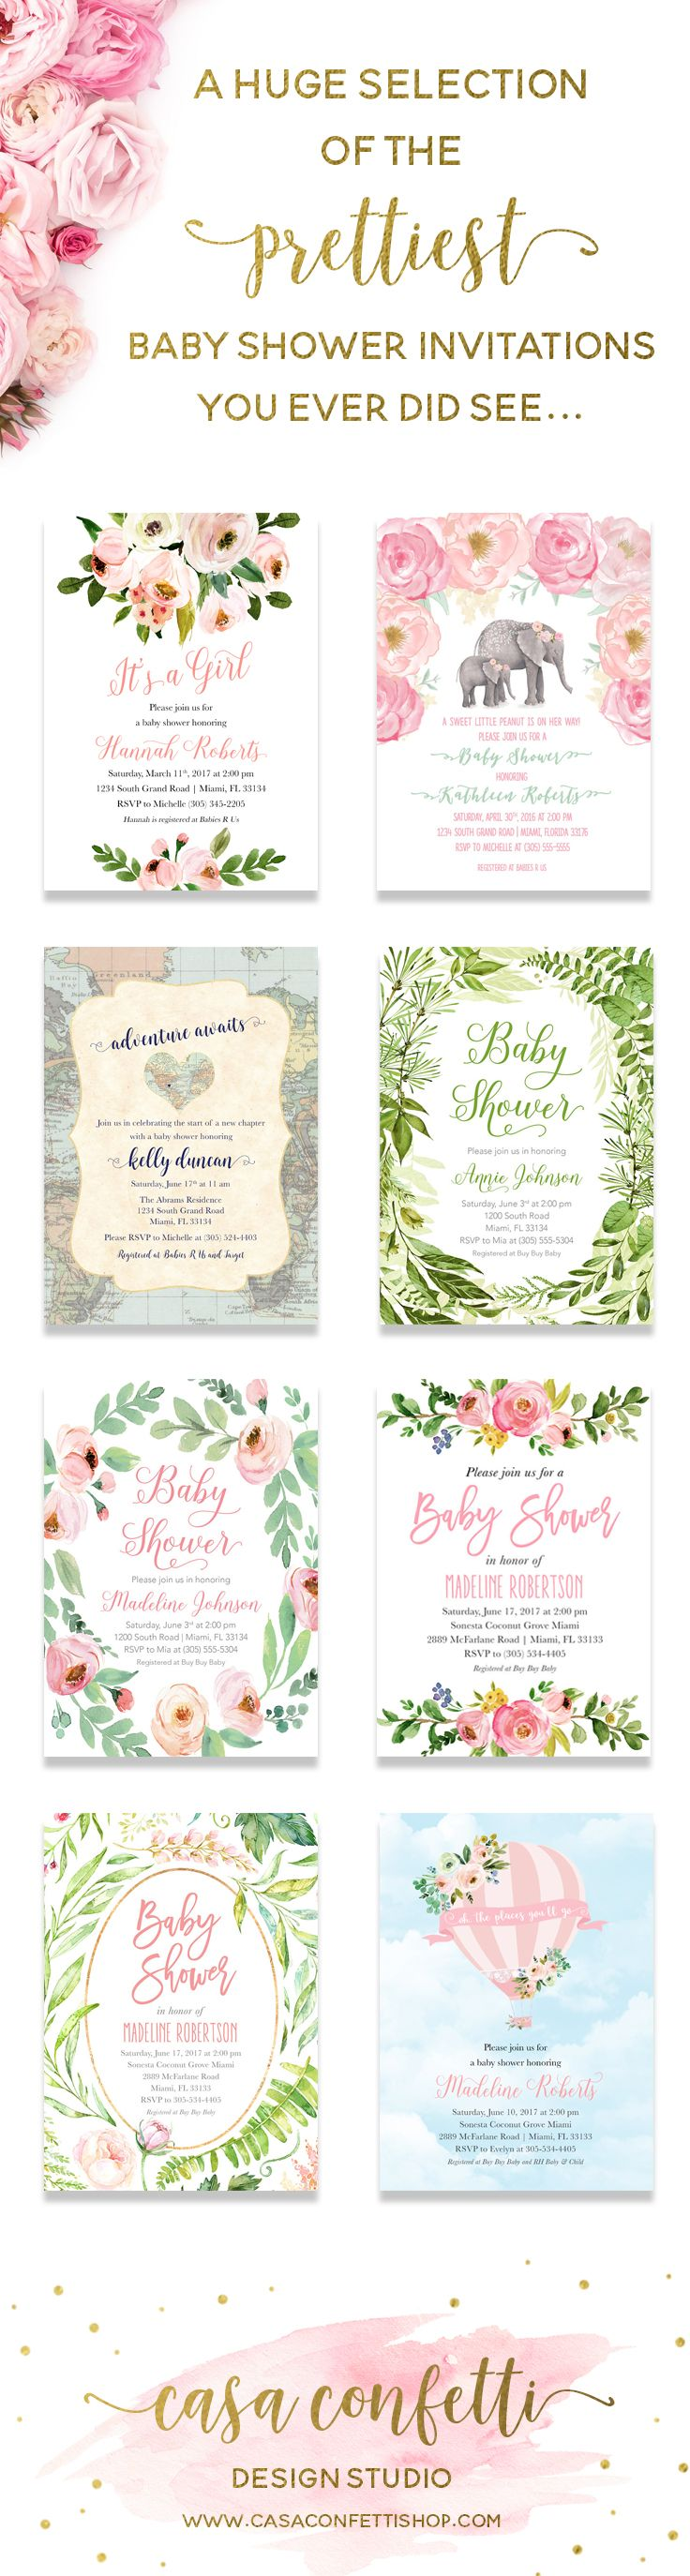 Casa Confetti Design Studio offers a huge selection of the prettiest baby shower invitations! Floral, greenery, elephant, travel, whatever your theme, we've got it!